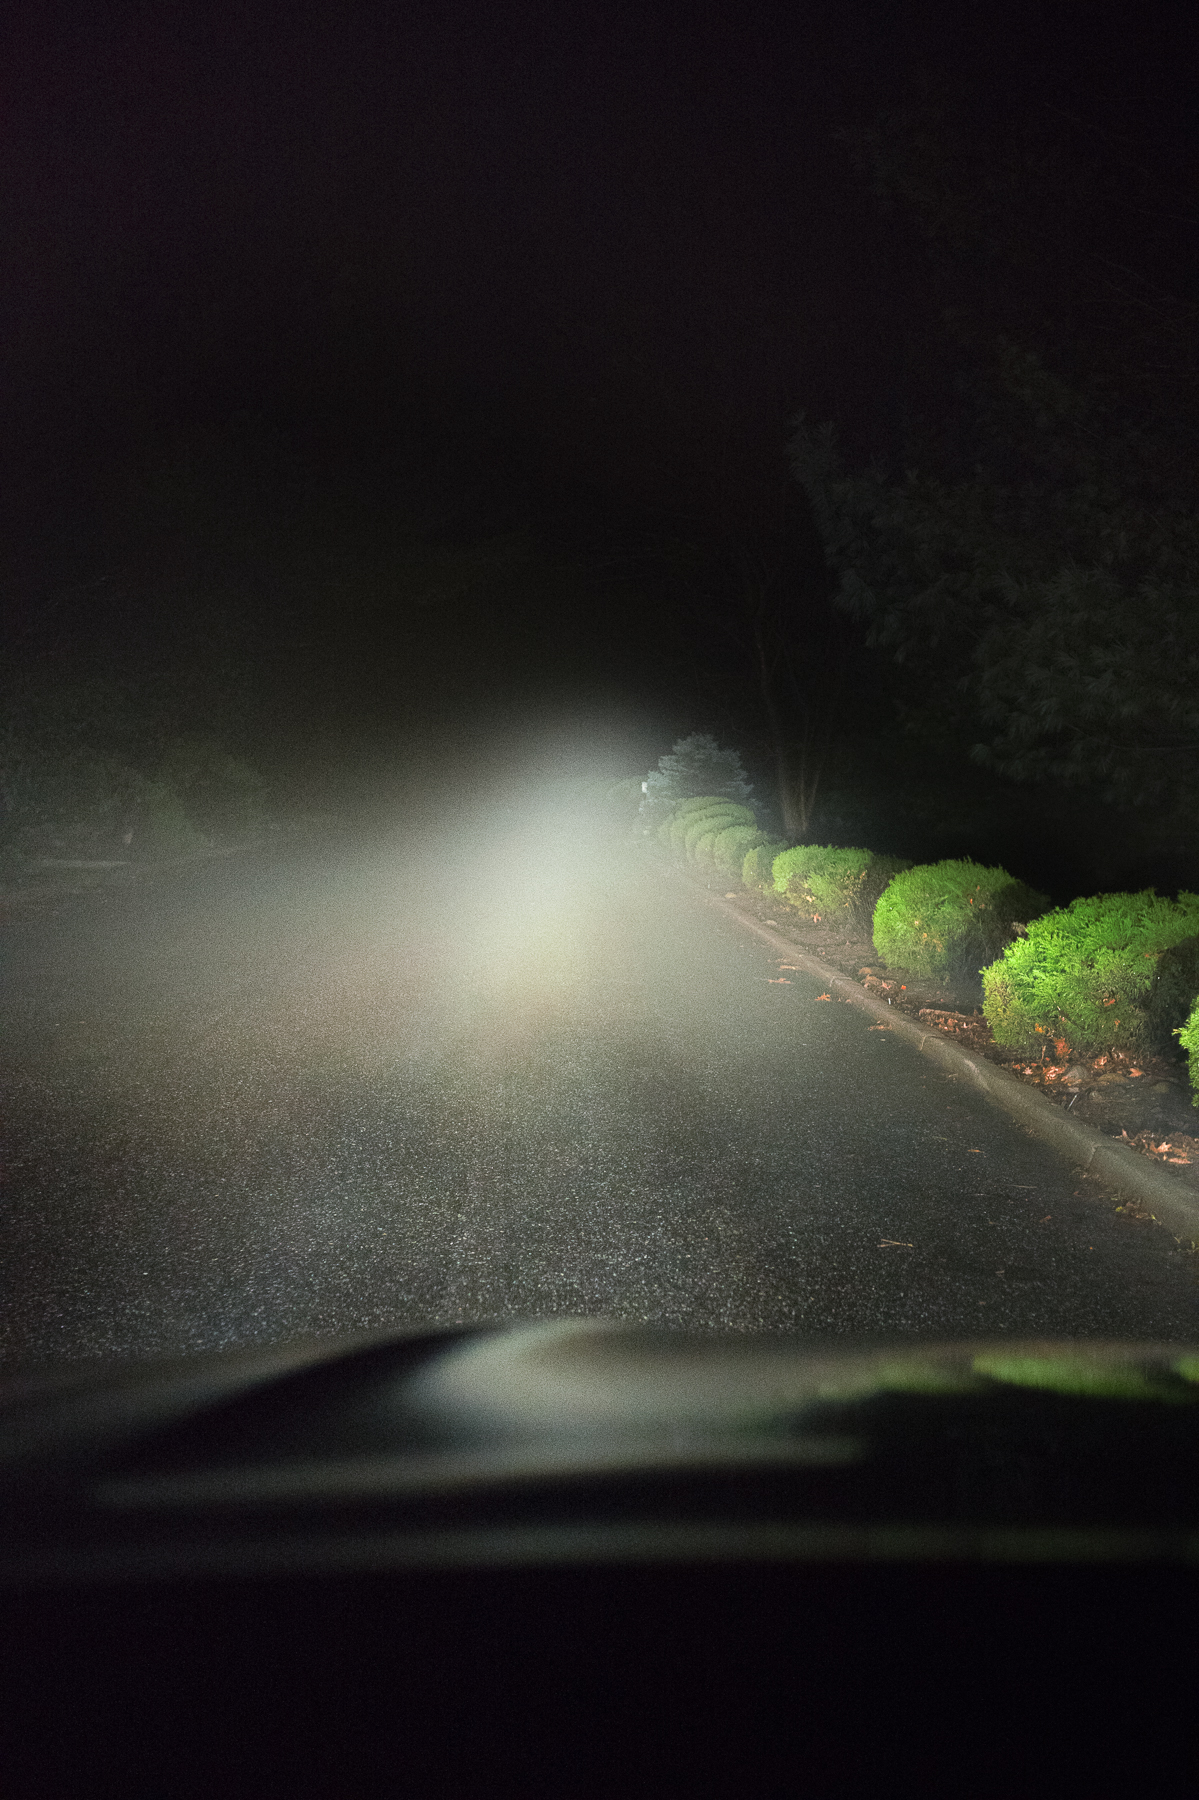 JOANN_CHAUS_THIS-IS-HERE_NIGHT-FOG_2.jpg